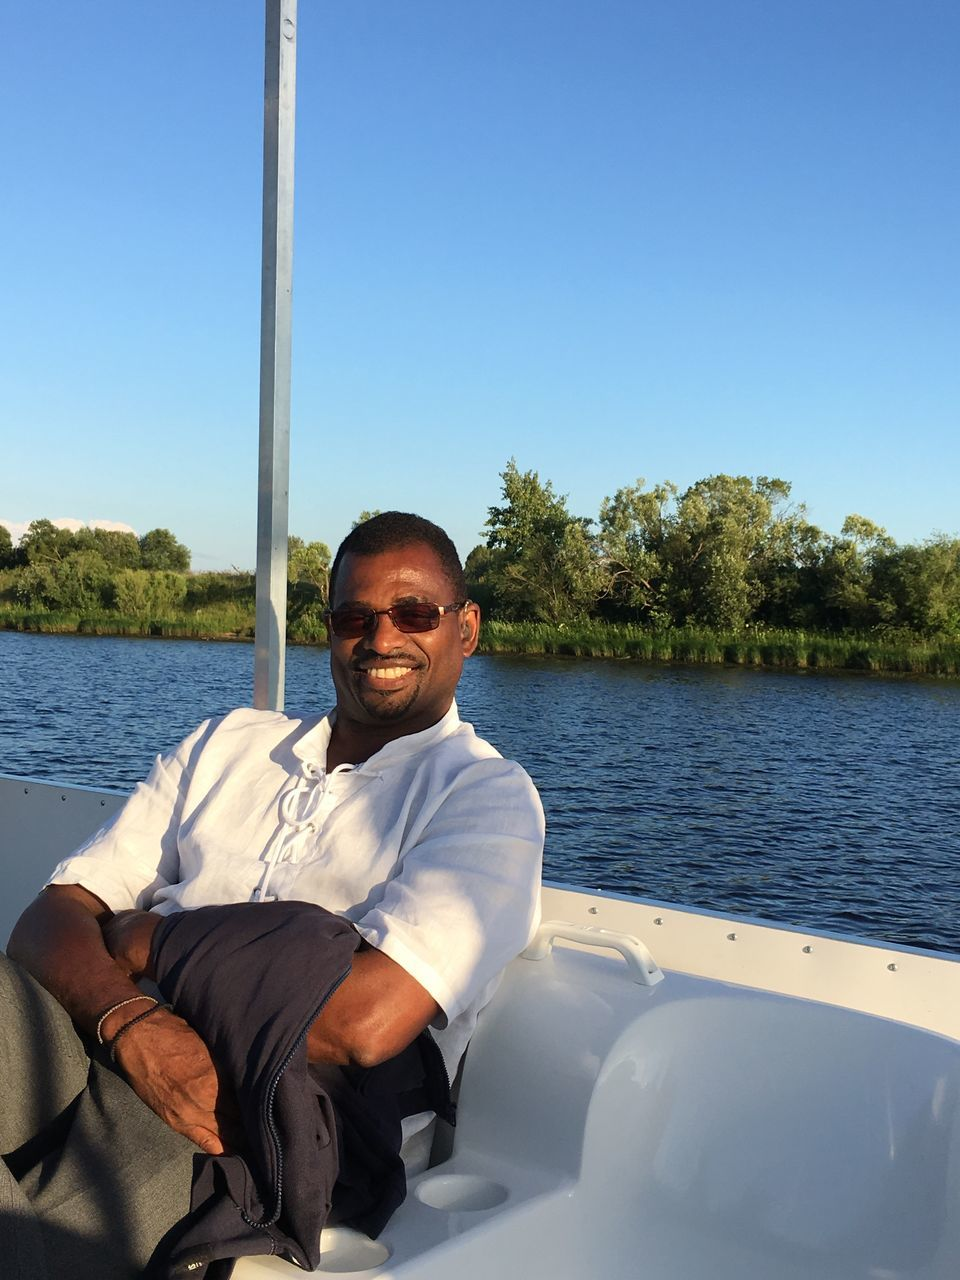 real people, one person, water, looking at camera, river, leisure activity, mode of transport, portrait, day, sailing, mid adult men, outdoors, transportation, lifestyles, nautical vessel, casual clothing, sitting, nature, smiling, clear sky, happiness, standing, young adult, tree, beauty in nature, sky